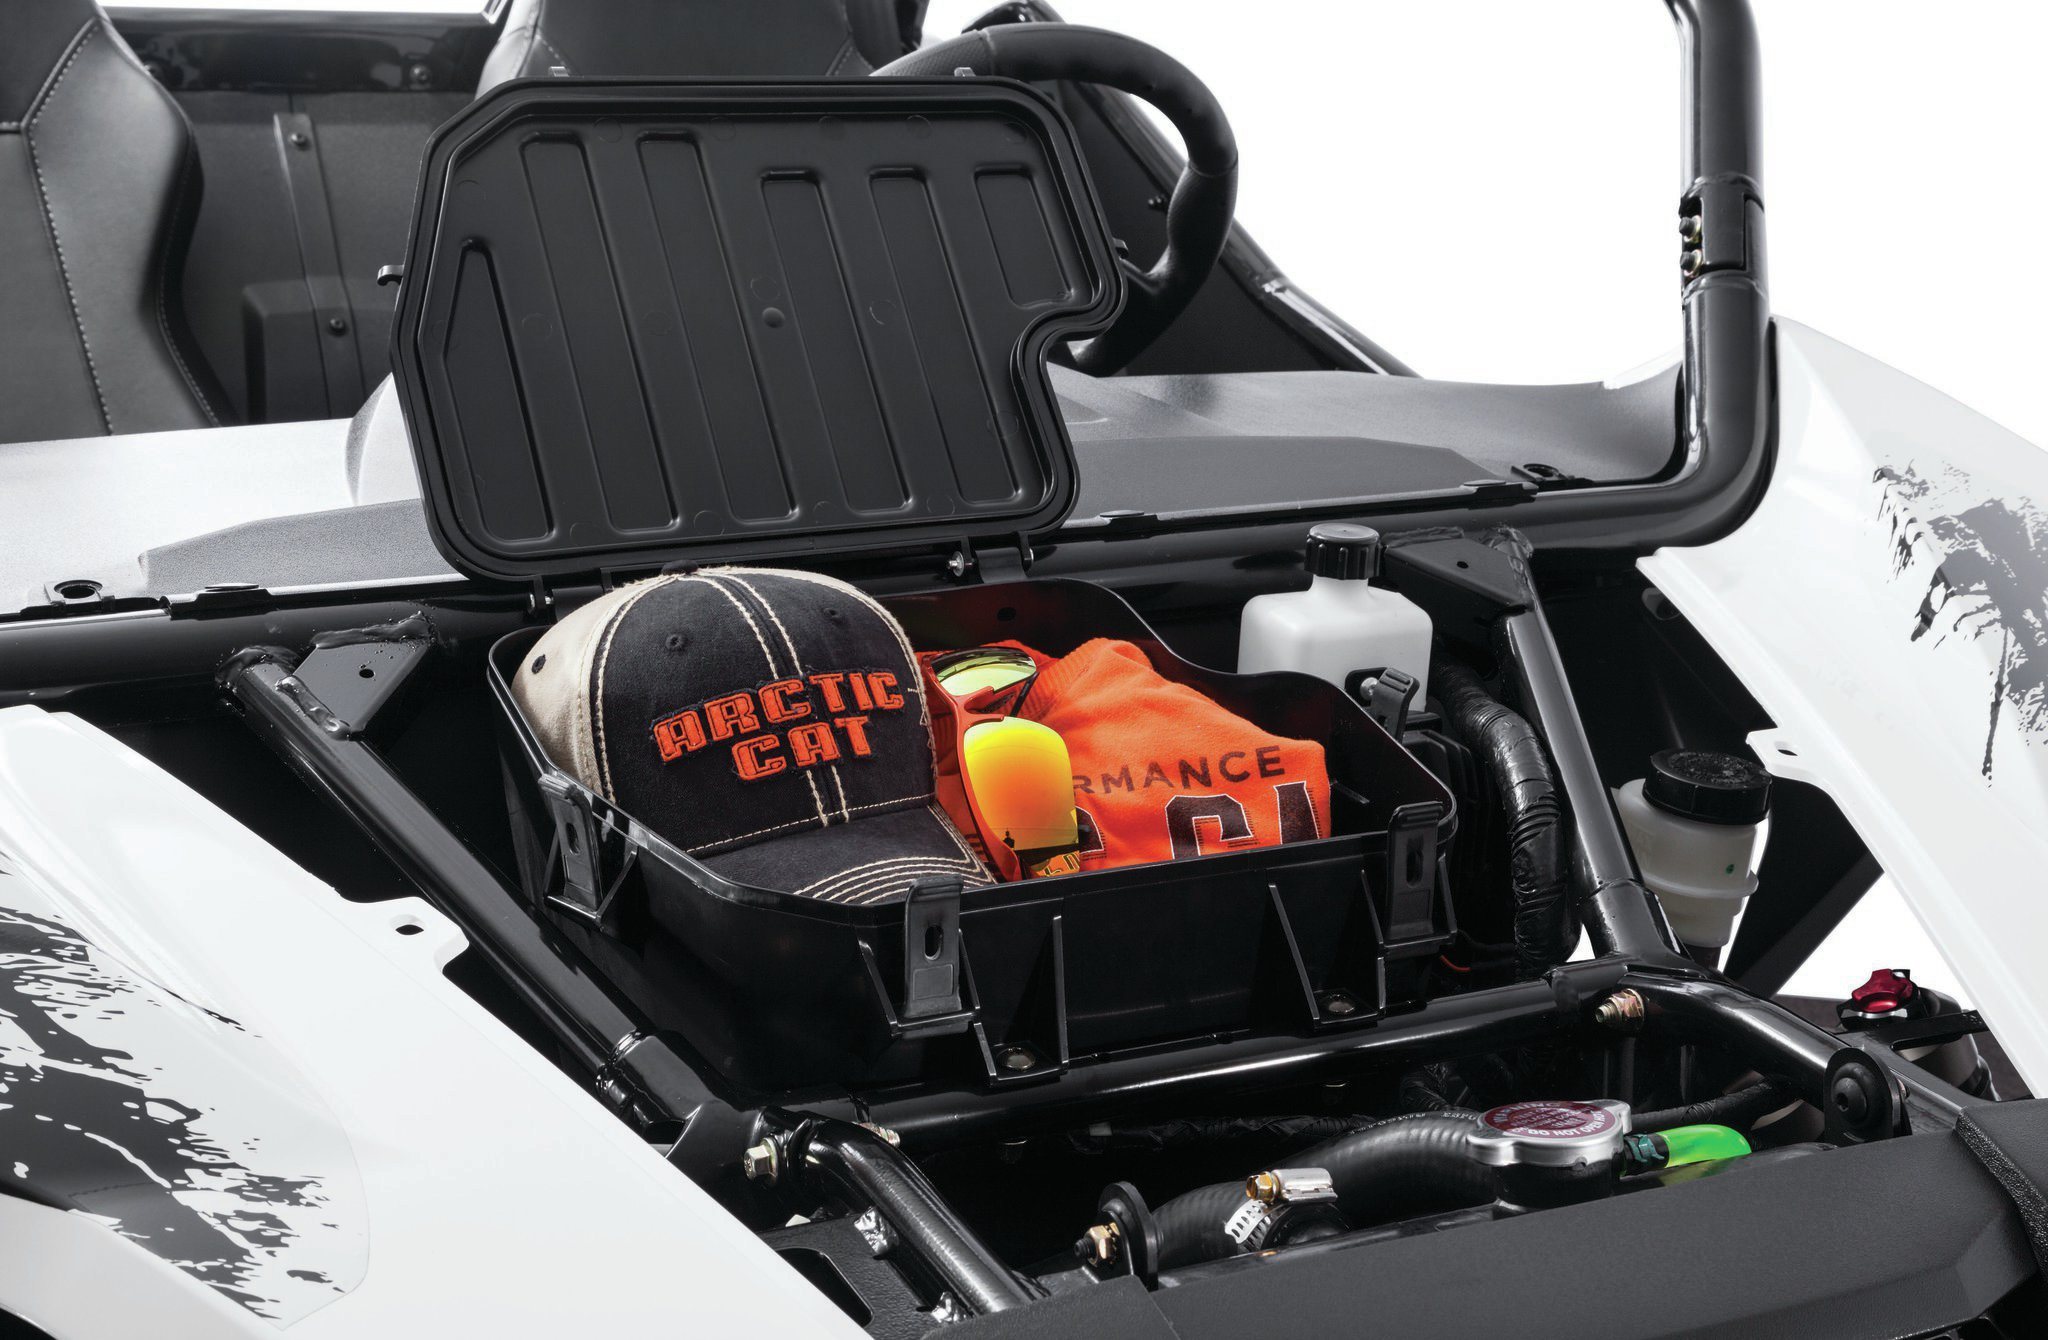 Under the hood is more storage for miscellaneous ropes, jackets, jumpers, and more.